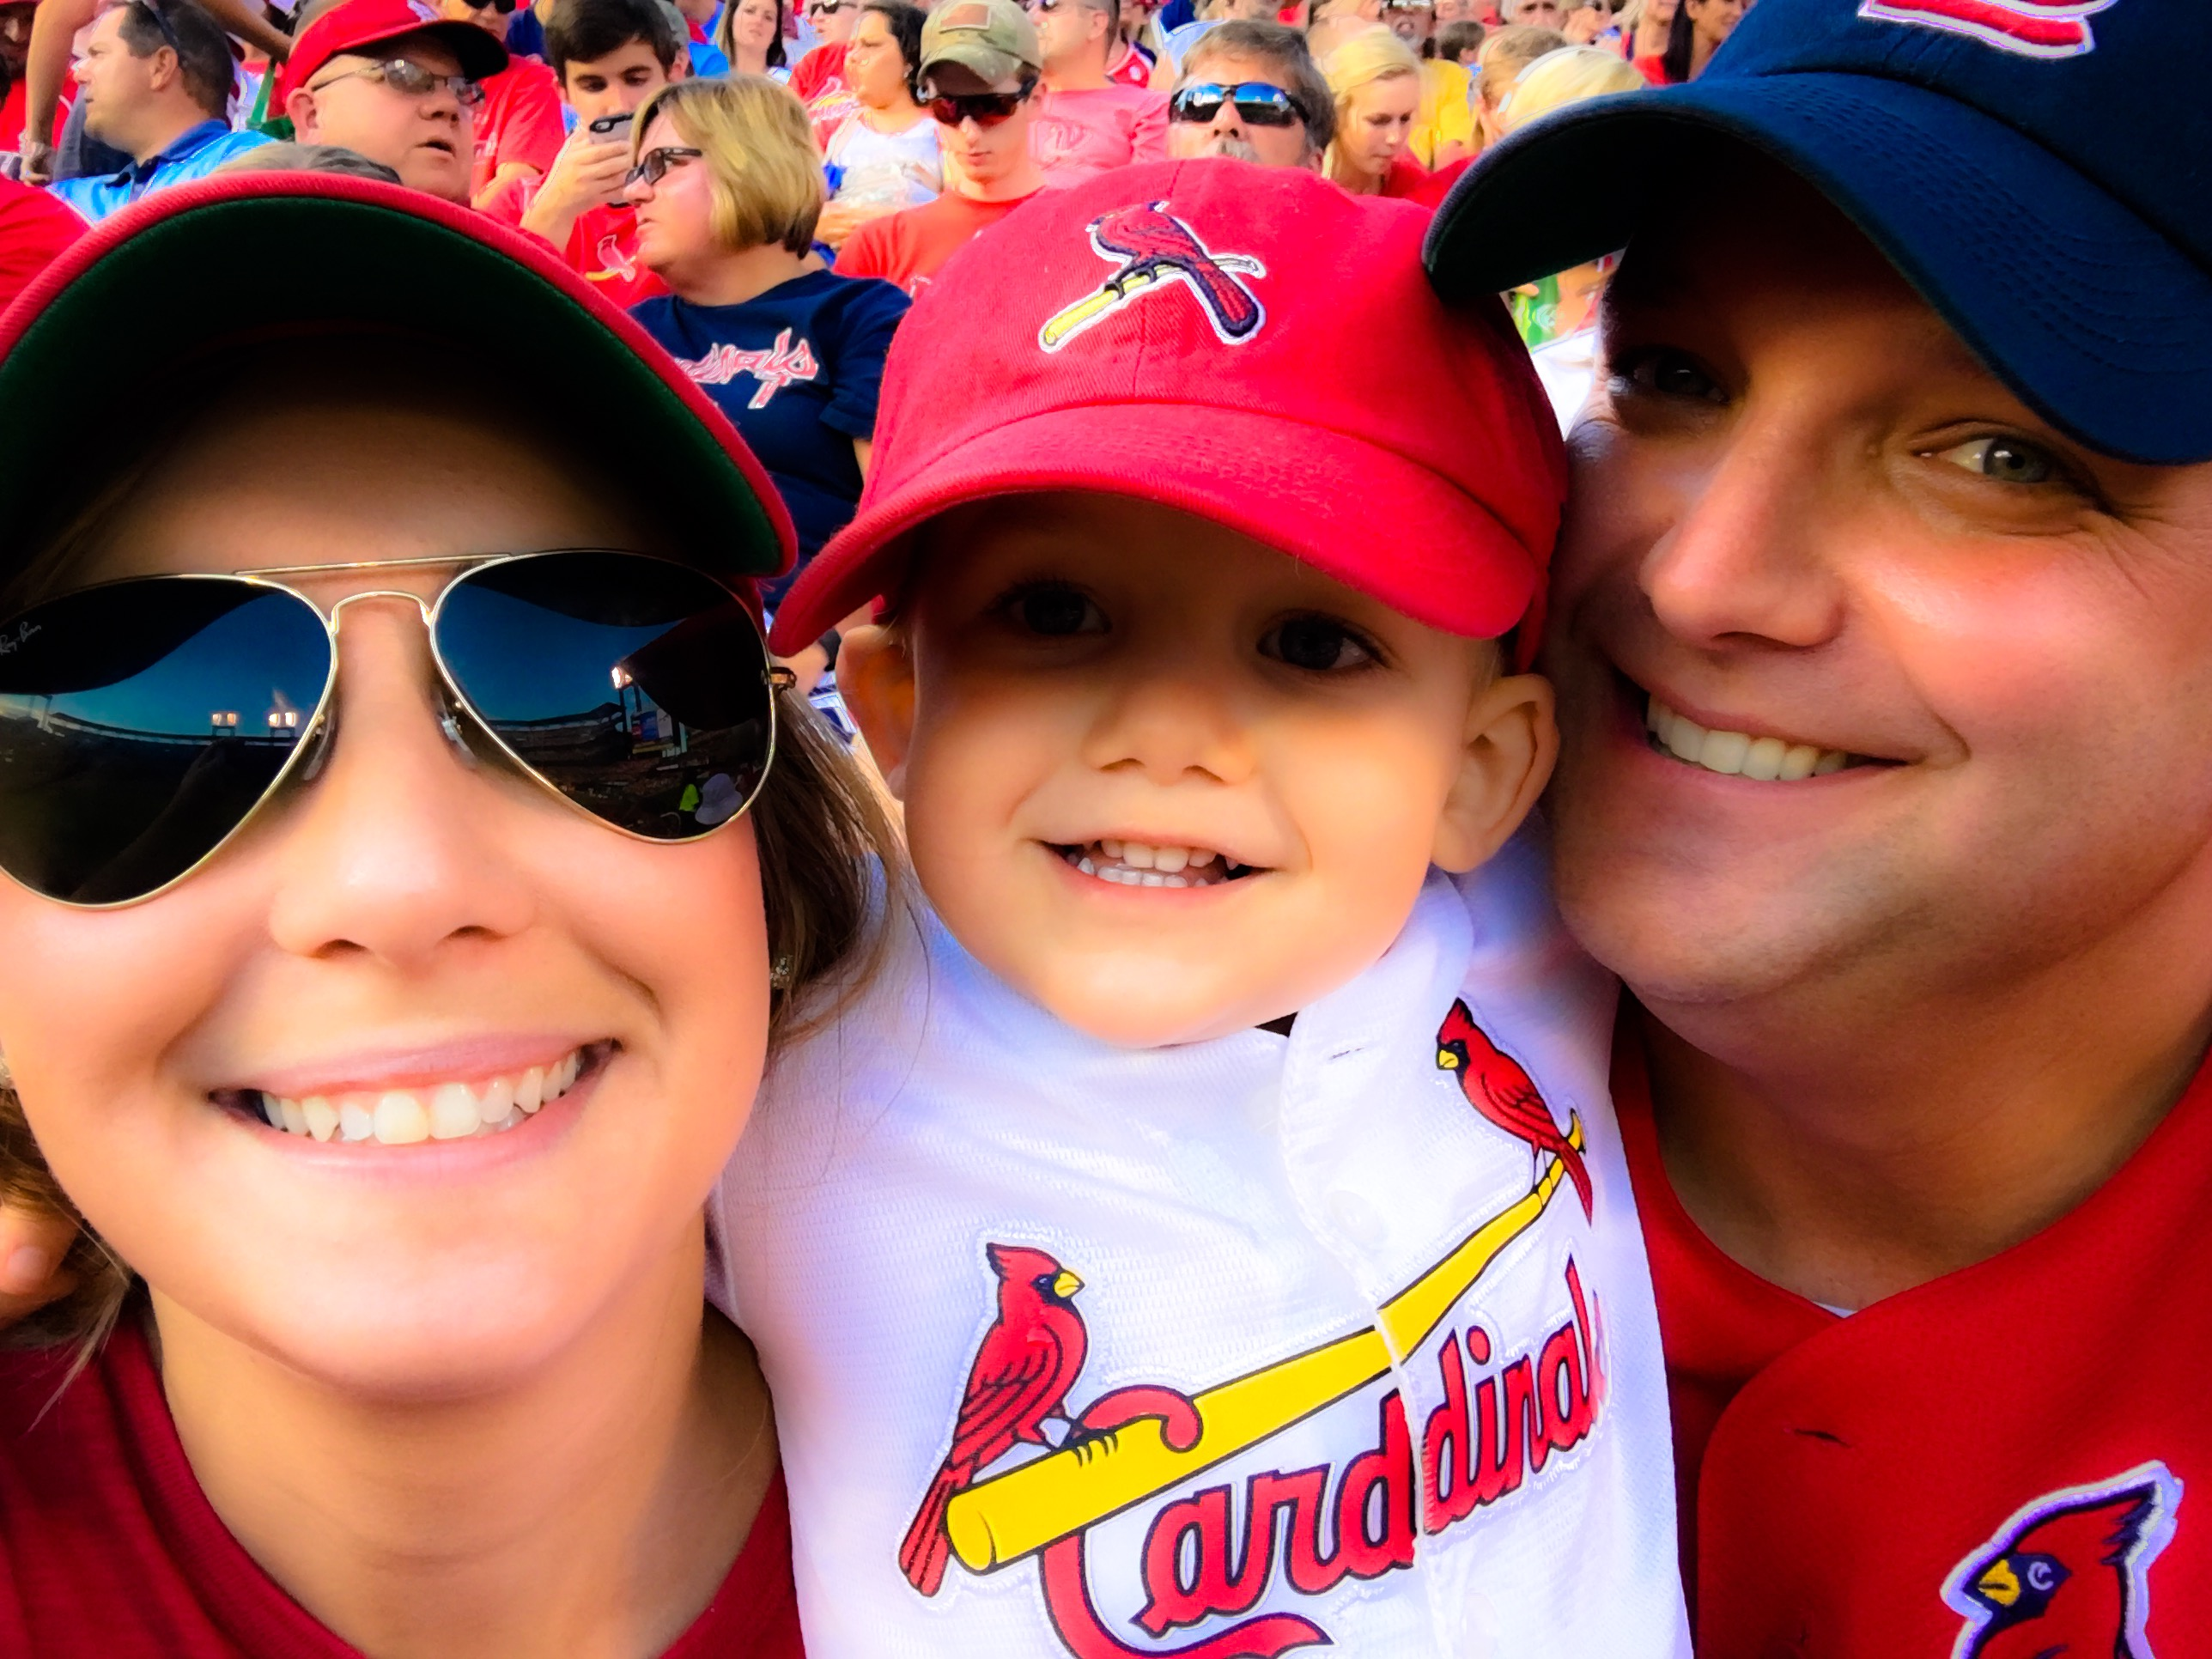 Danielle and her family at a cardinals game